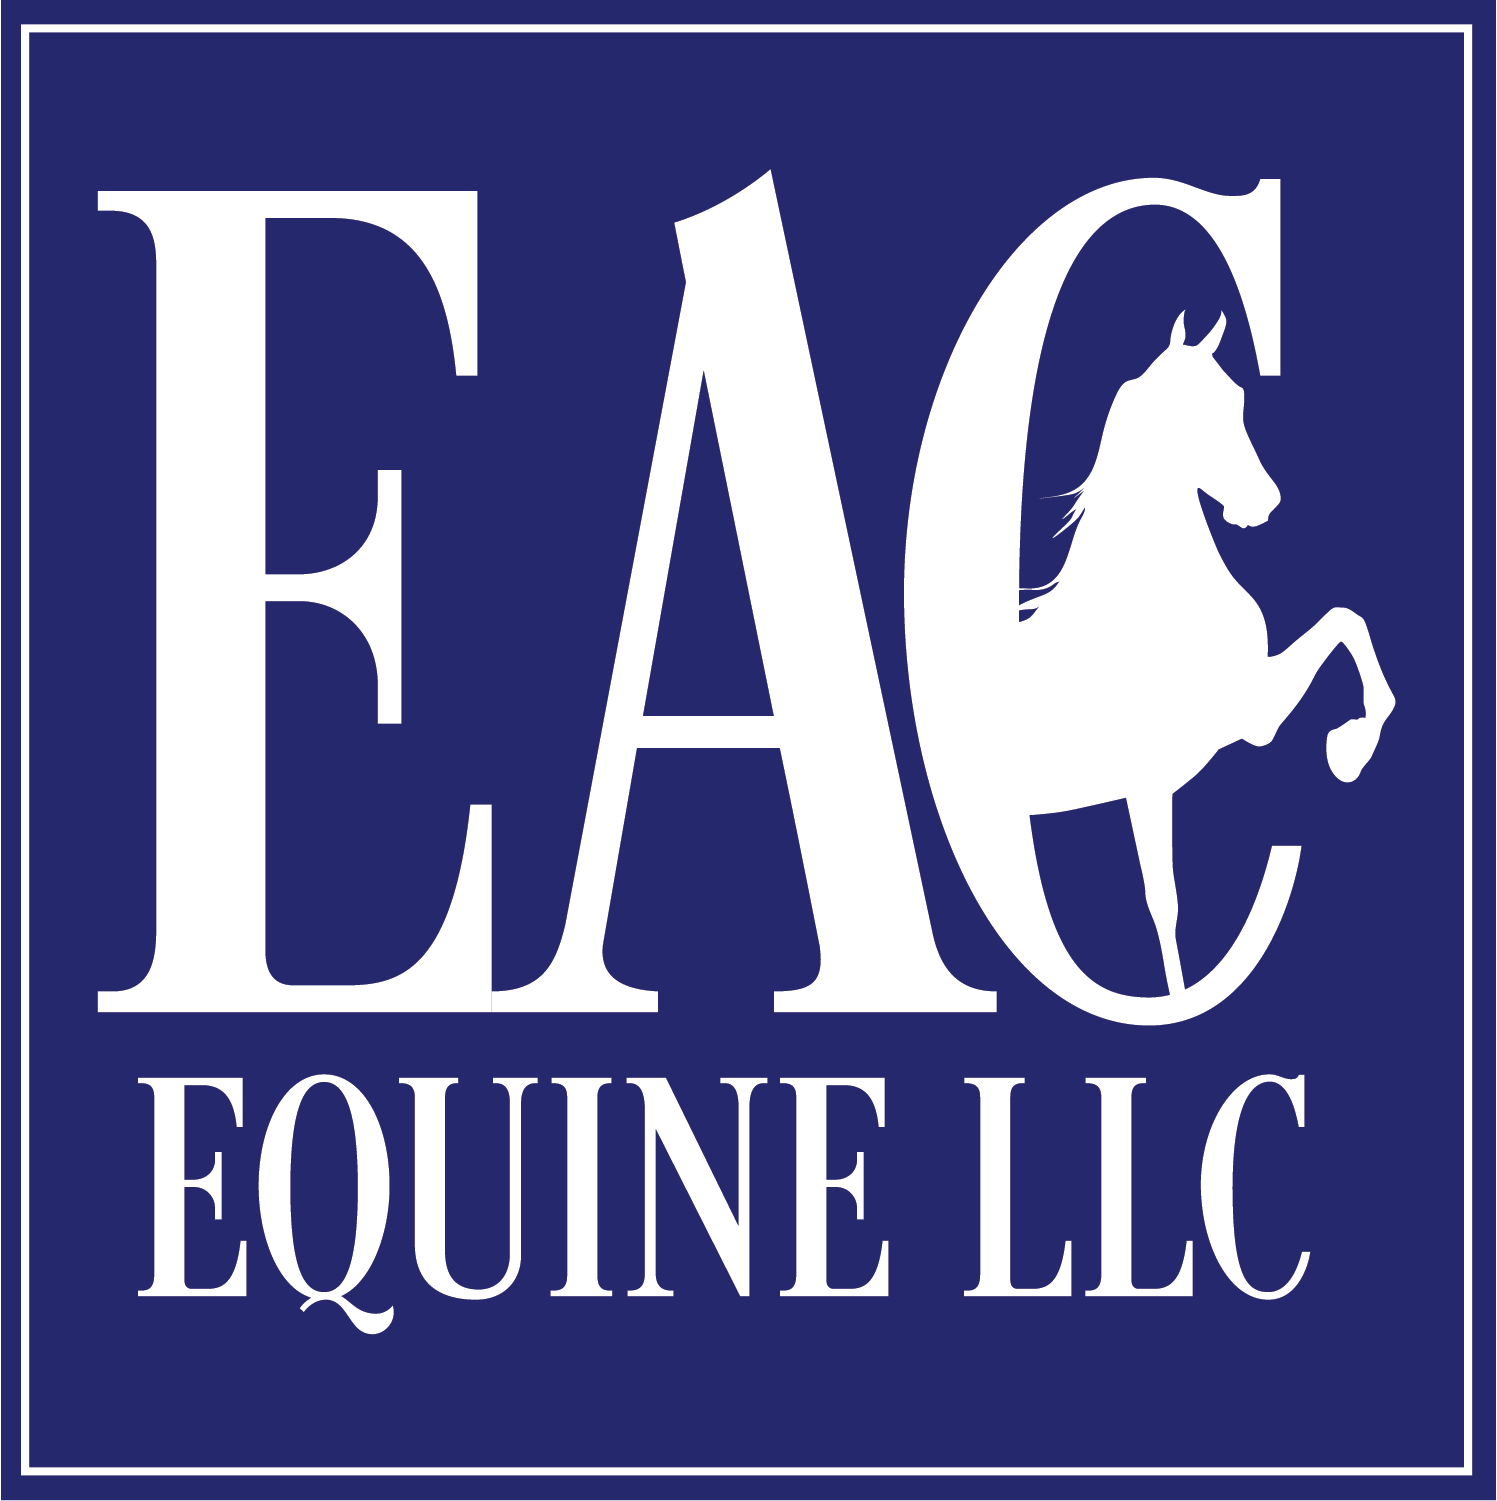 EAC Equine